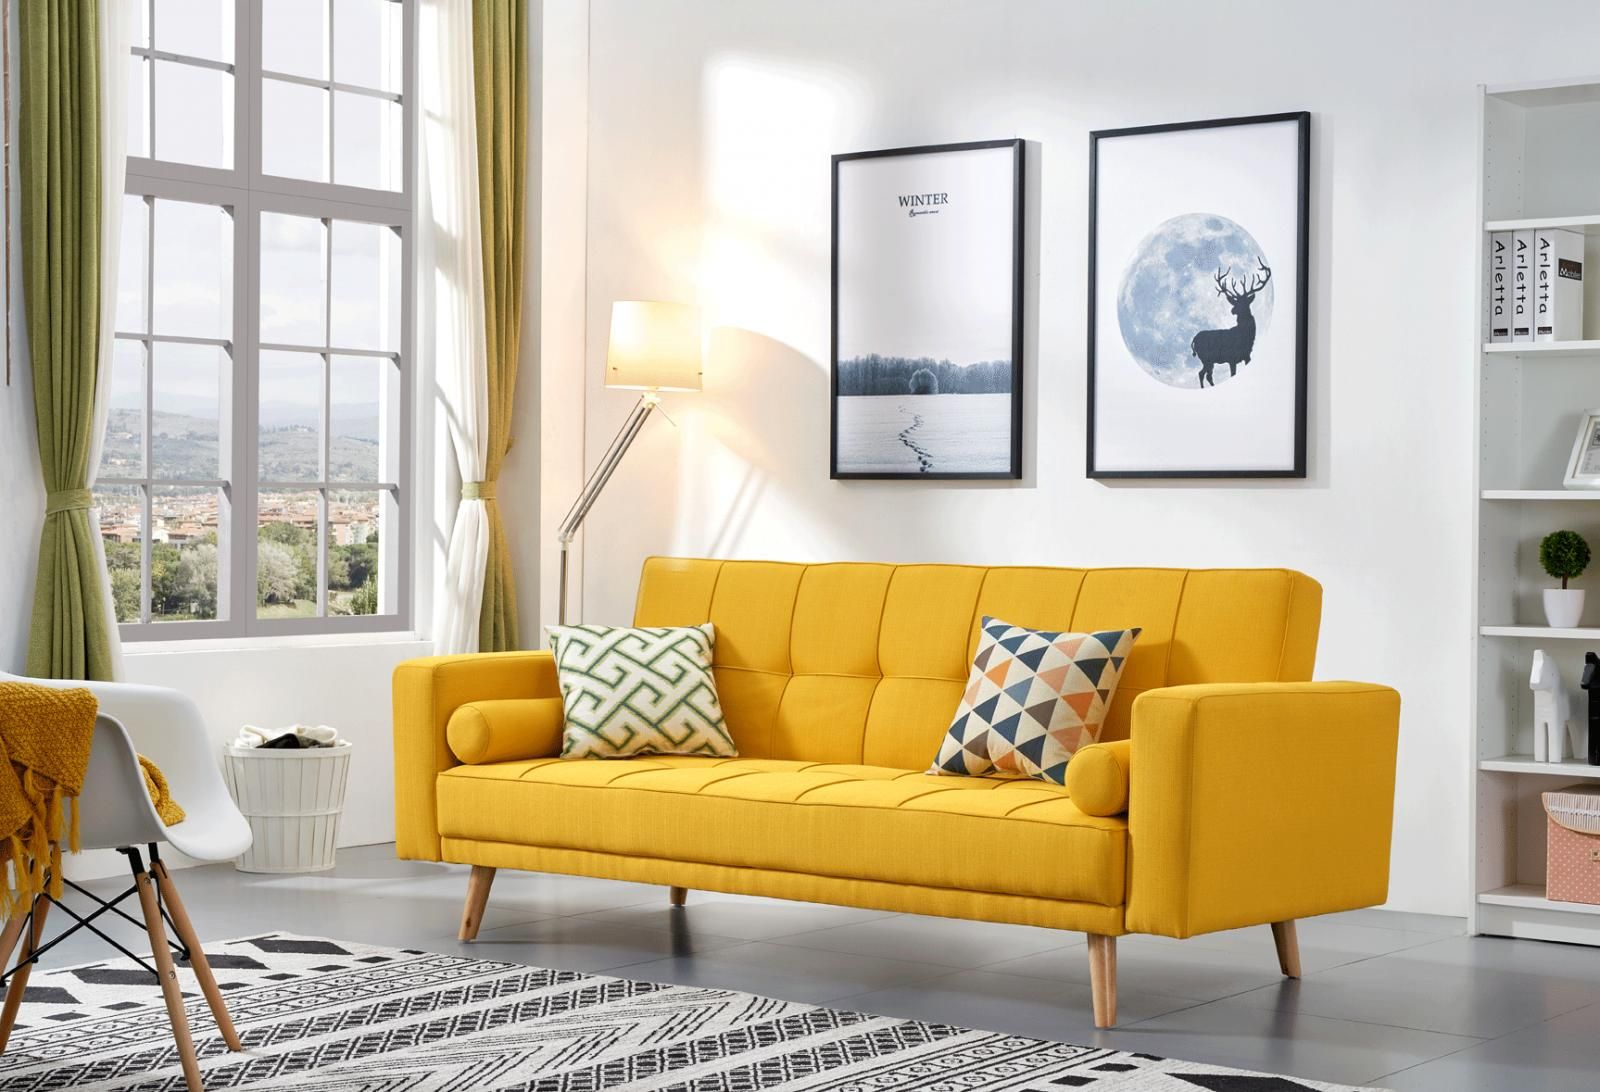 Contemporary Yellow Fabric 3 Seat Sofa Bed Modern Chic Soflex 116 Walmart Com In 2020 Yellow Living Room Living Room Sofa Minimalist Living Room